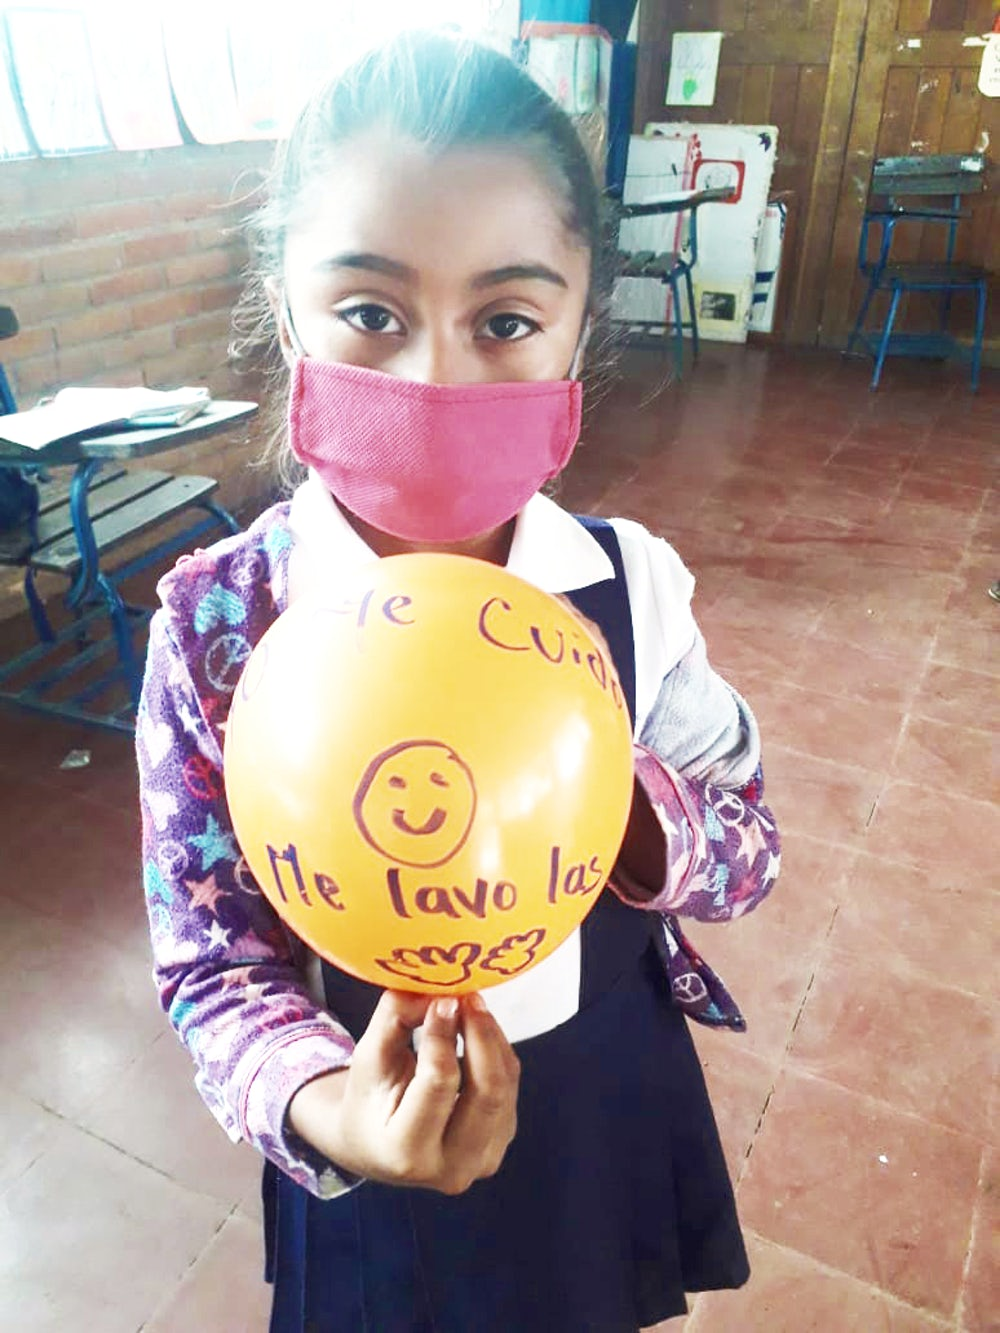 Young girl wearing a pink mask, holding a yellow balloon.